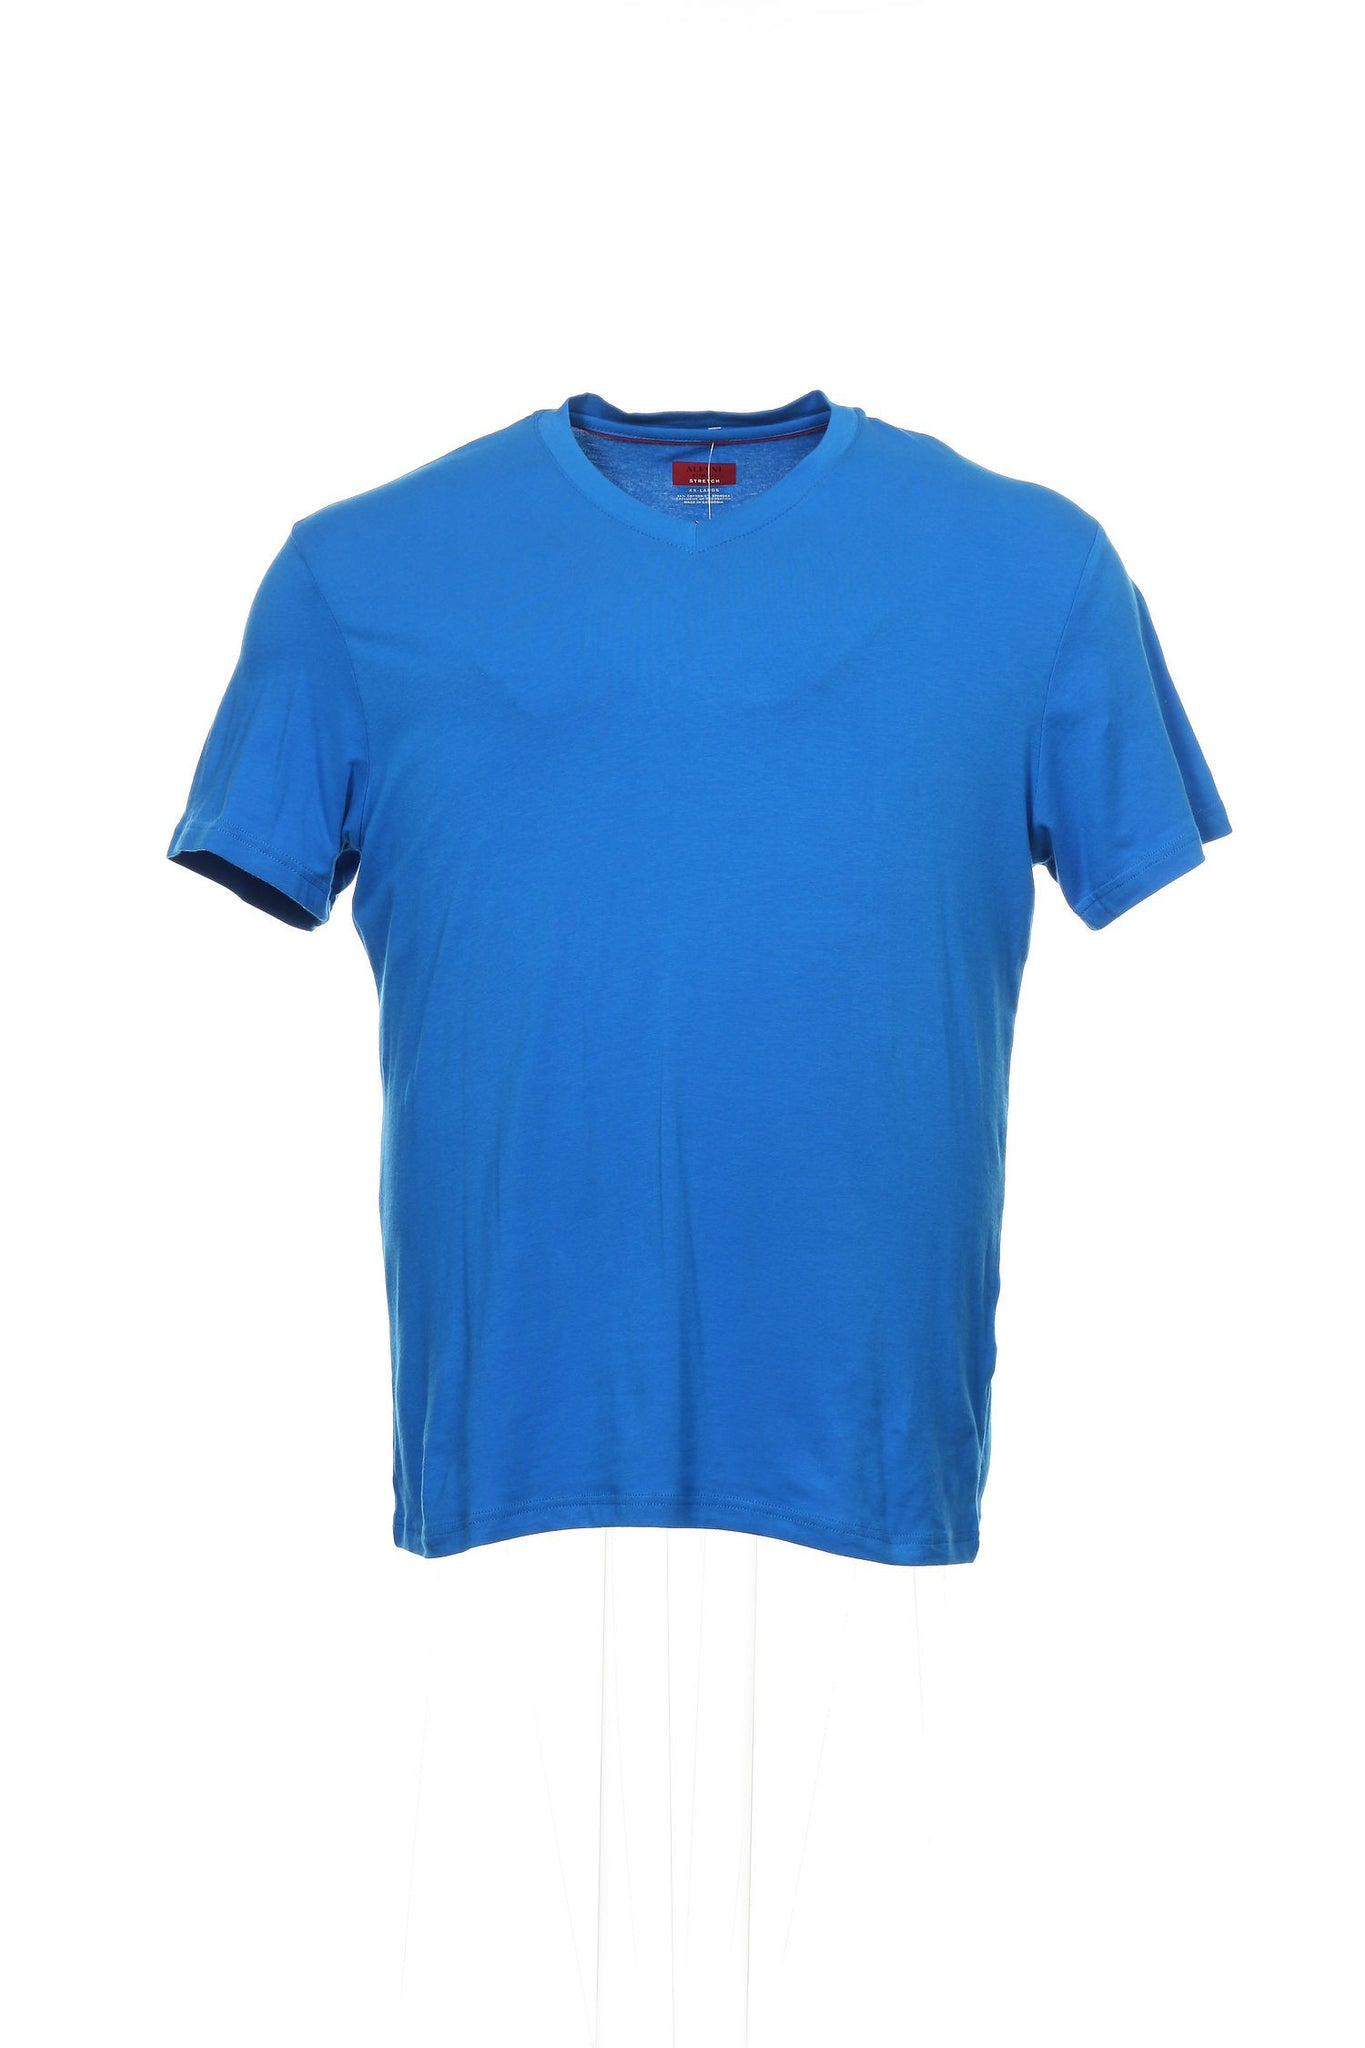 Spectrum by Alfani Mens Blue V-Neck T-Shirt